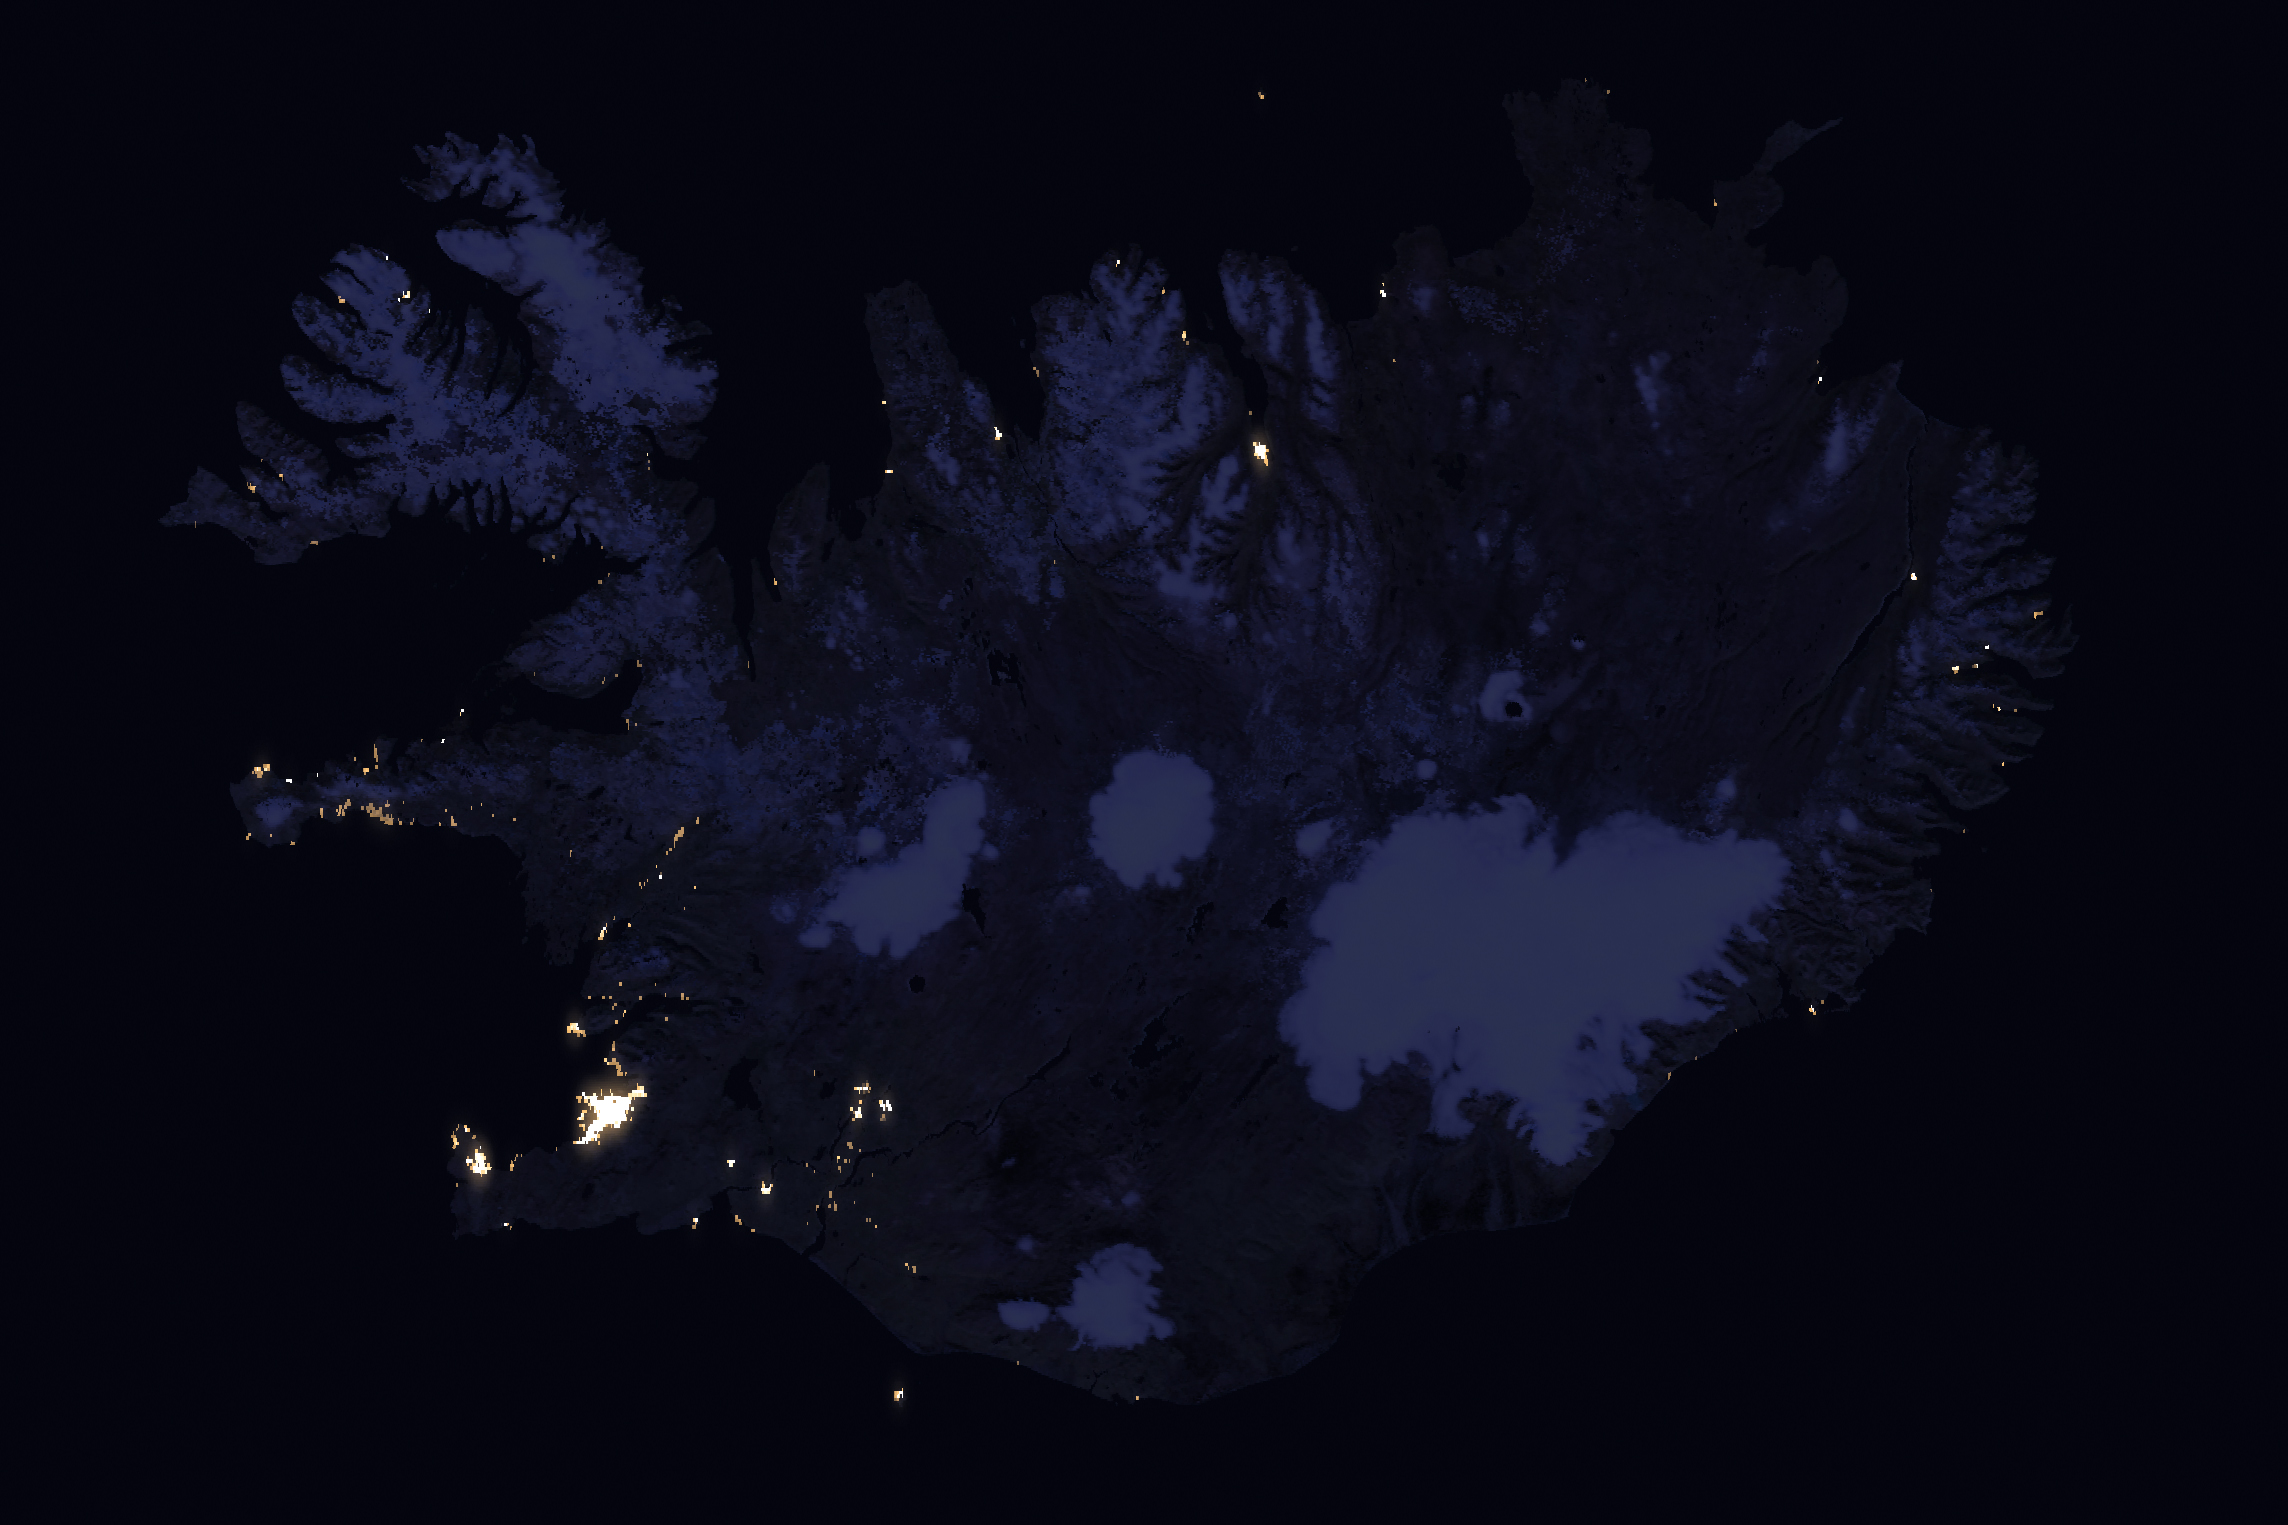 Today's Image of the Day comes thanks to the NASA Earth Observatory and features a look at Iceland at night.